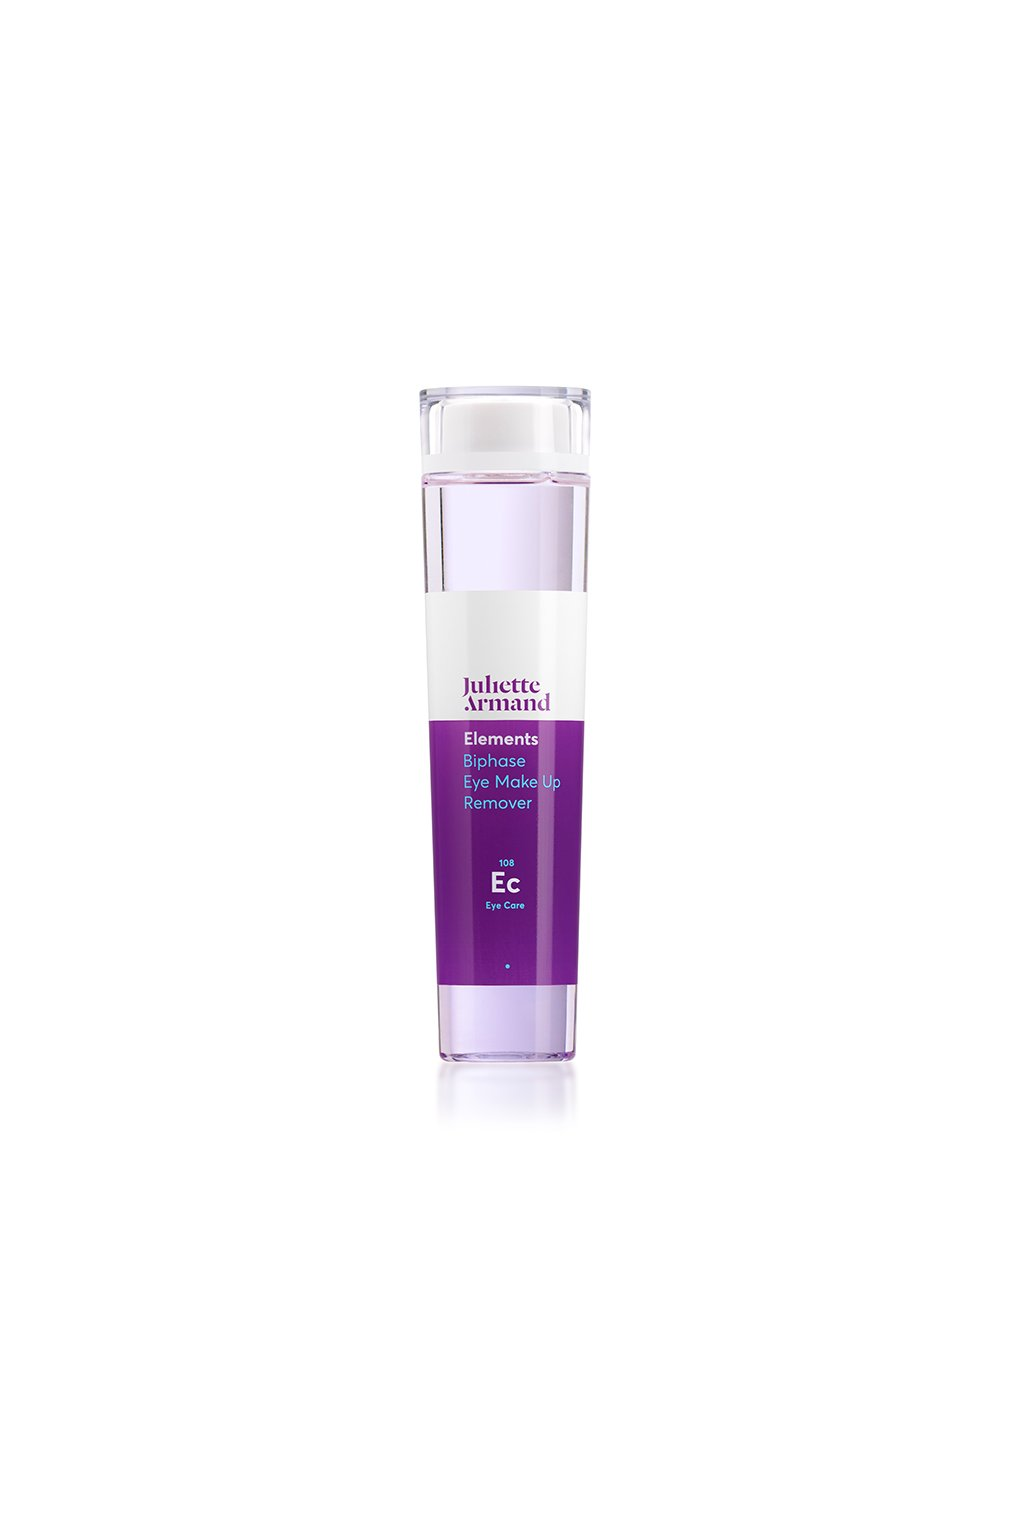 Biphase Eye Make Up Remover 210ml 850